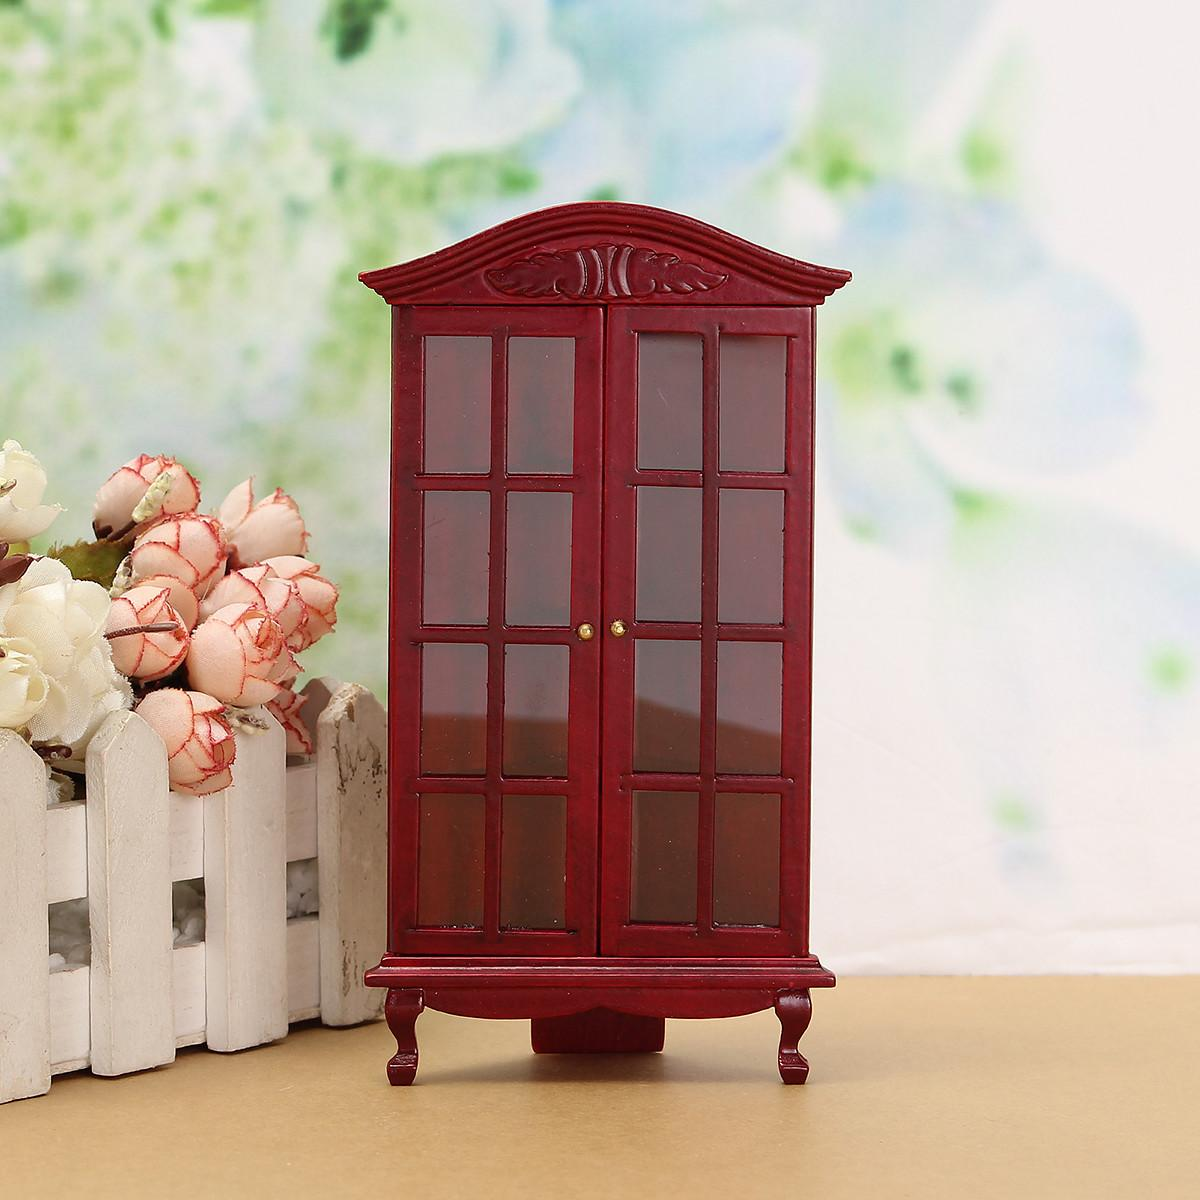 Dollhouse Miniature Furniture Modern White Red Wooden